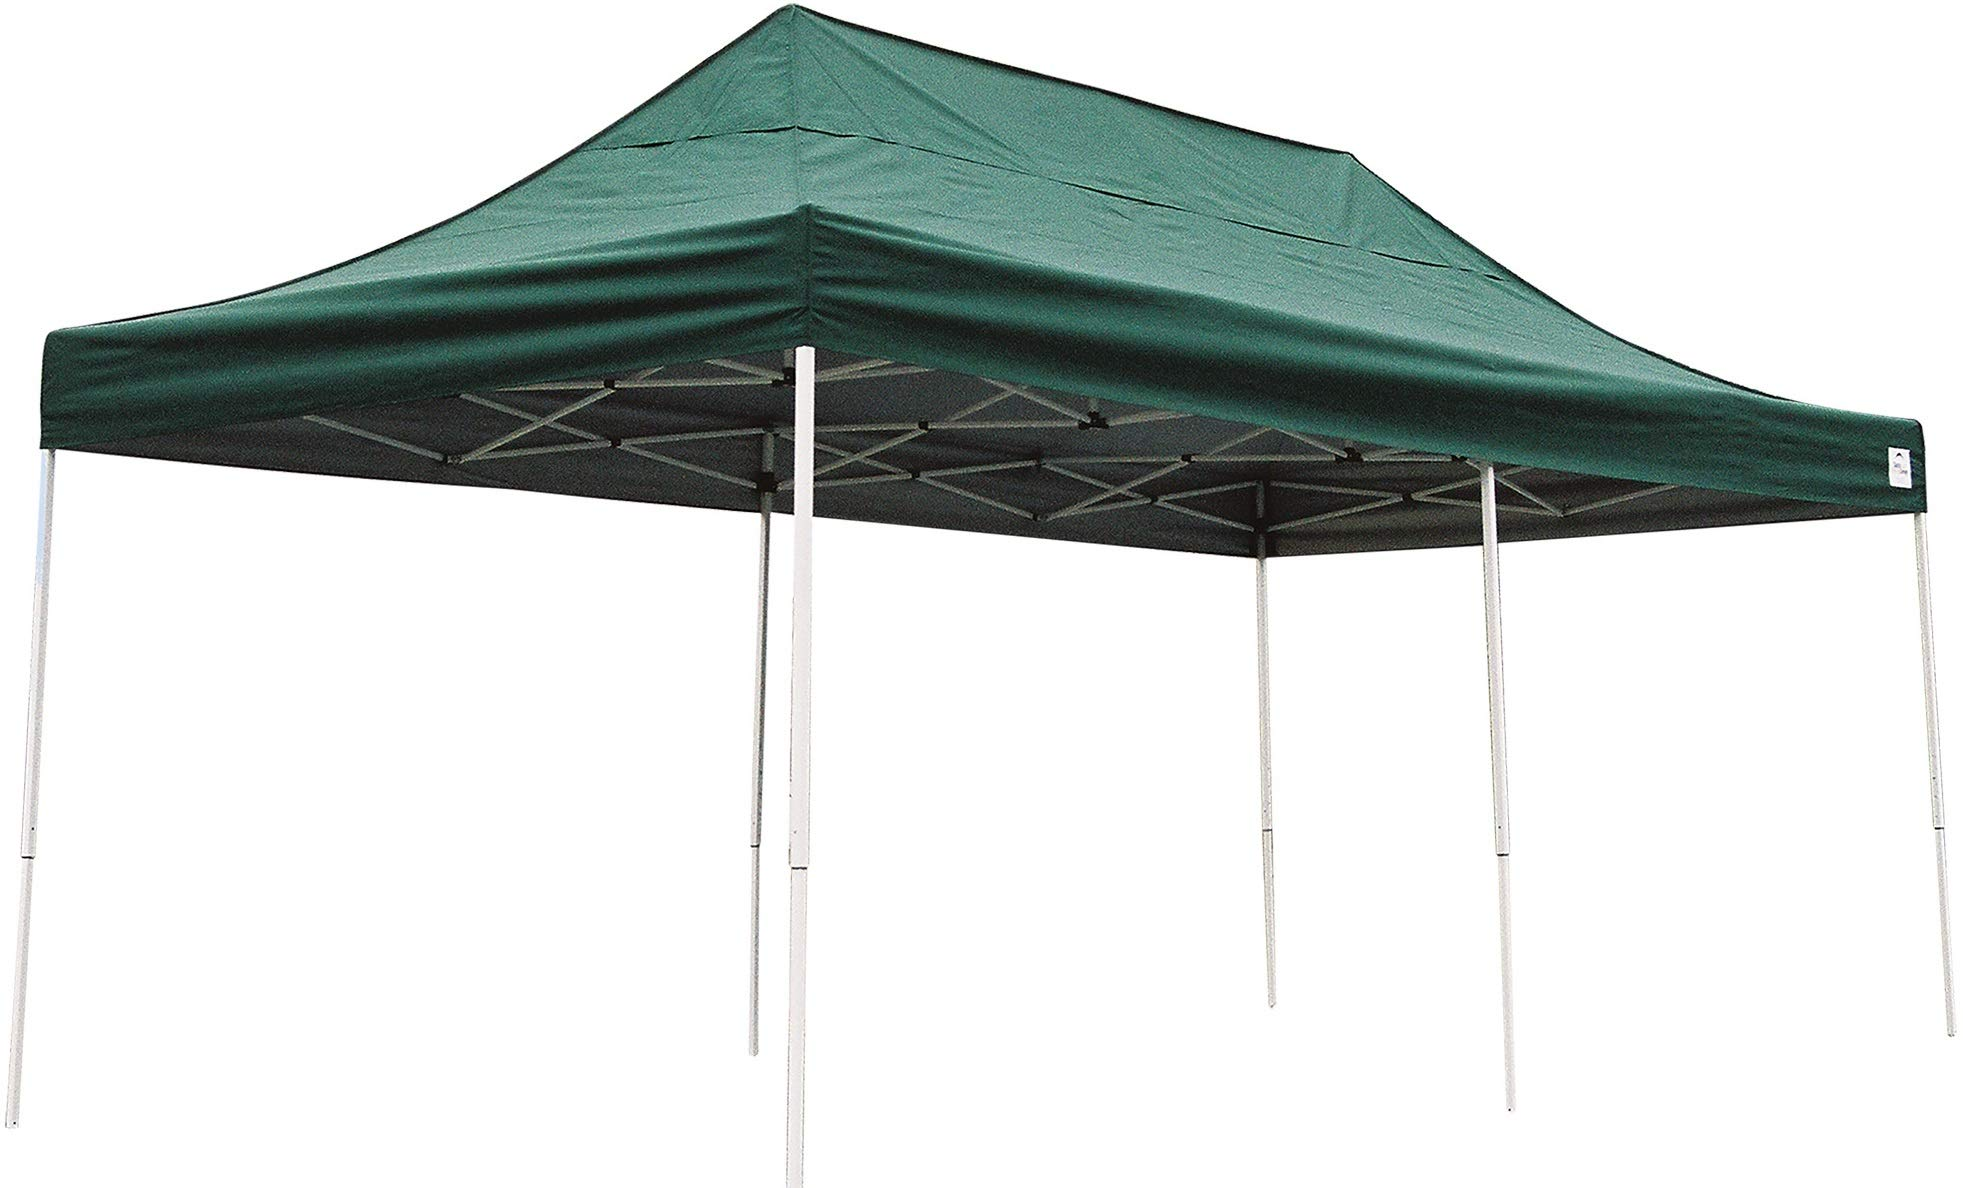 ShelterLogic Easy Set-Up 10 x 20-Feet Straight Leg 50+ UPF Protection Pop-Up Canopy with Roller Storage Bag for the Beach, Park, Tailgating, and Other Outdoor Activities, Green